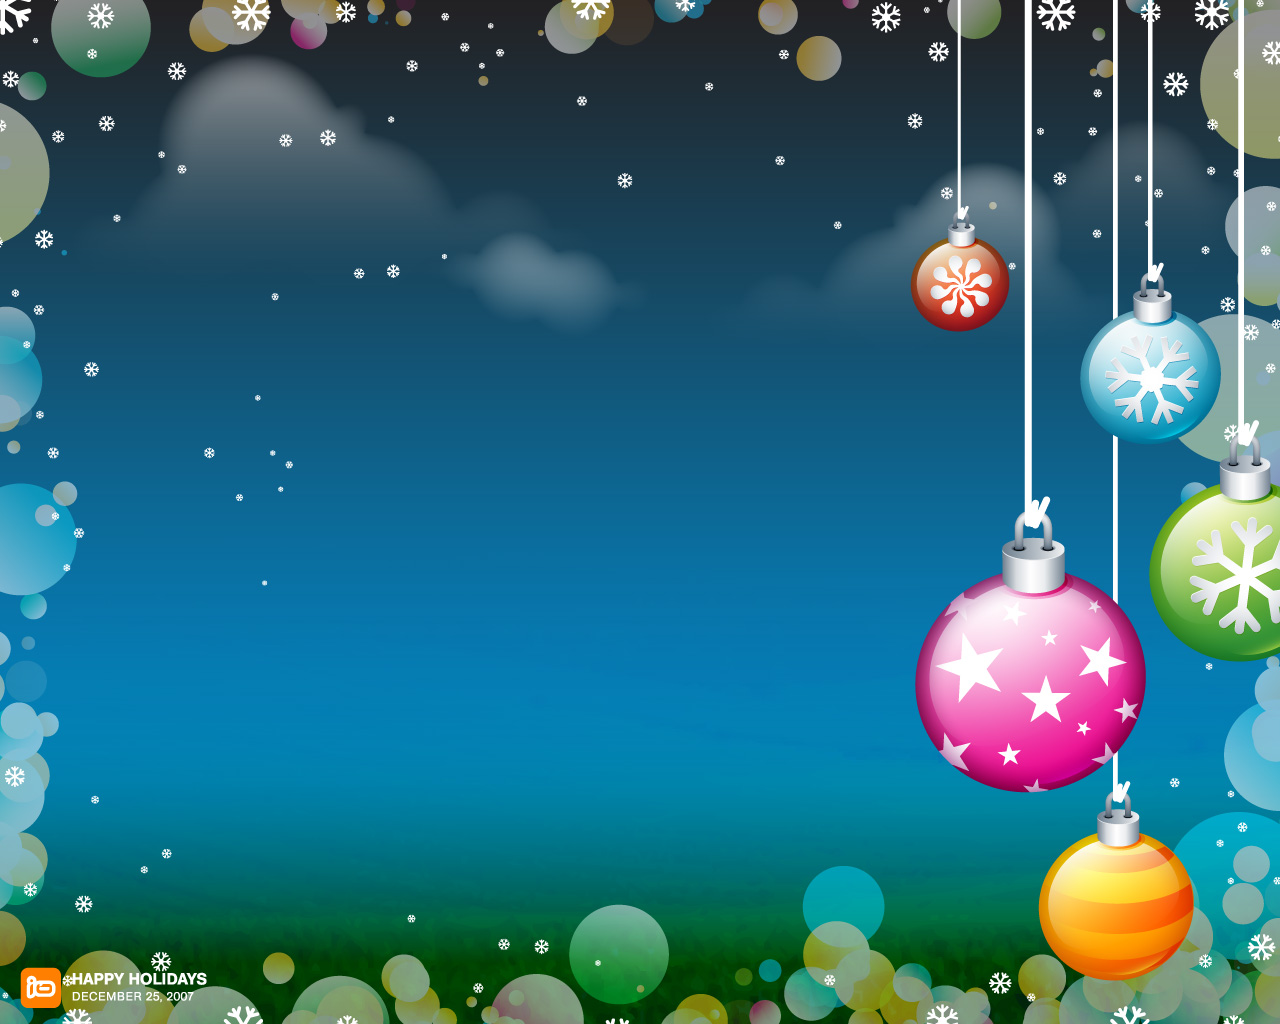 13 Free Religious Christmas Vectors Images